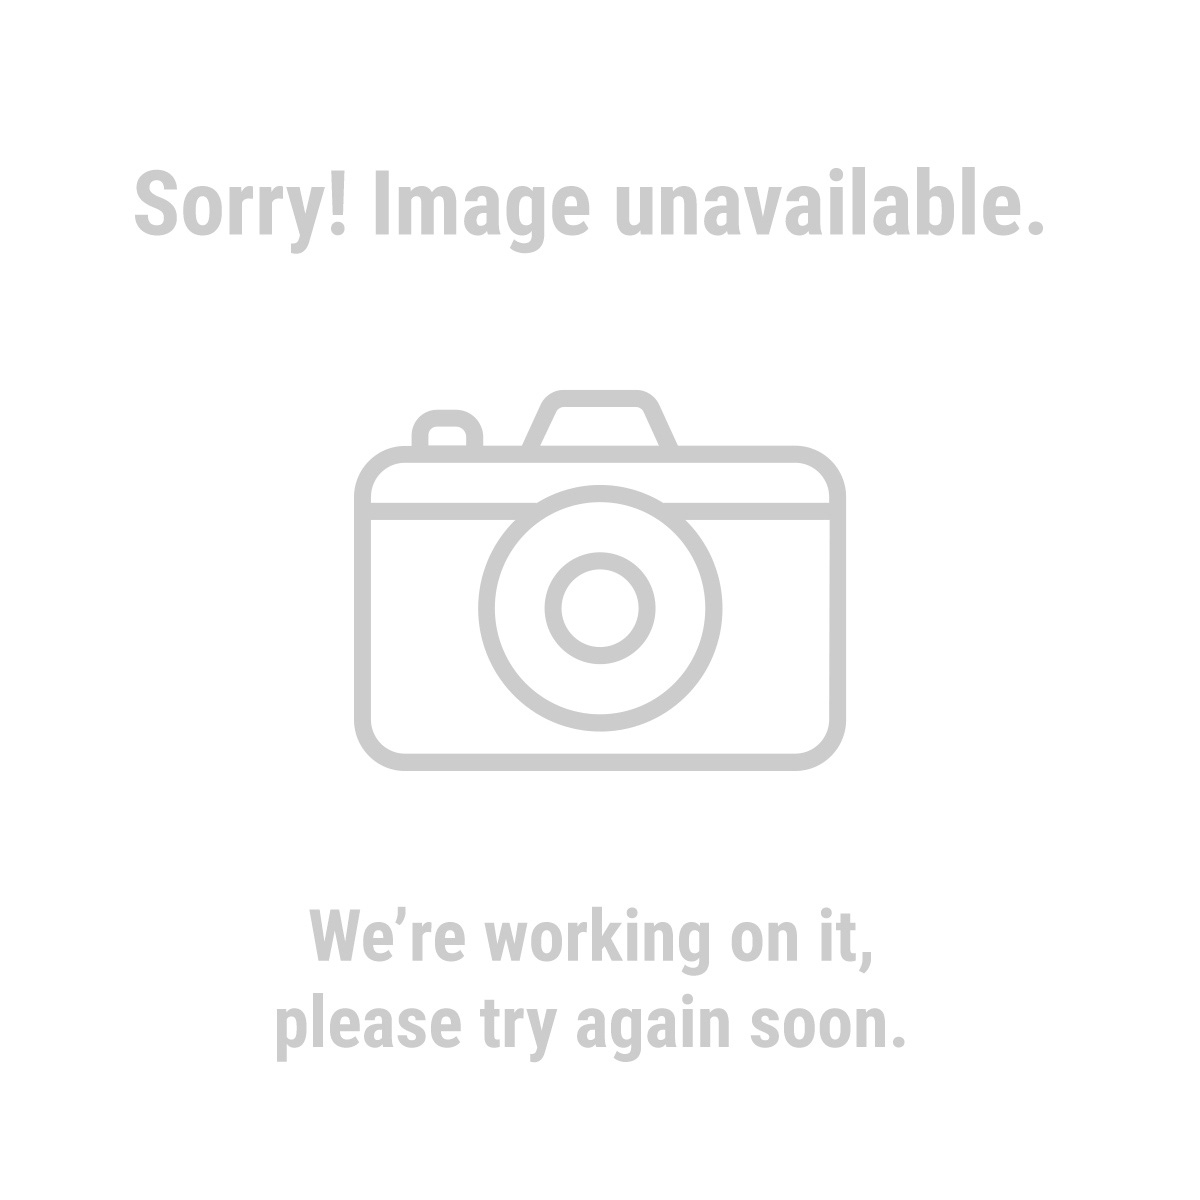 Warrior 69982 5 Piece 5 in. 24 Grit Resin Fiber Sanding Discs